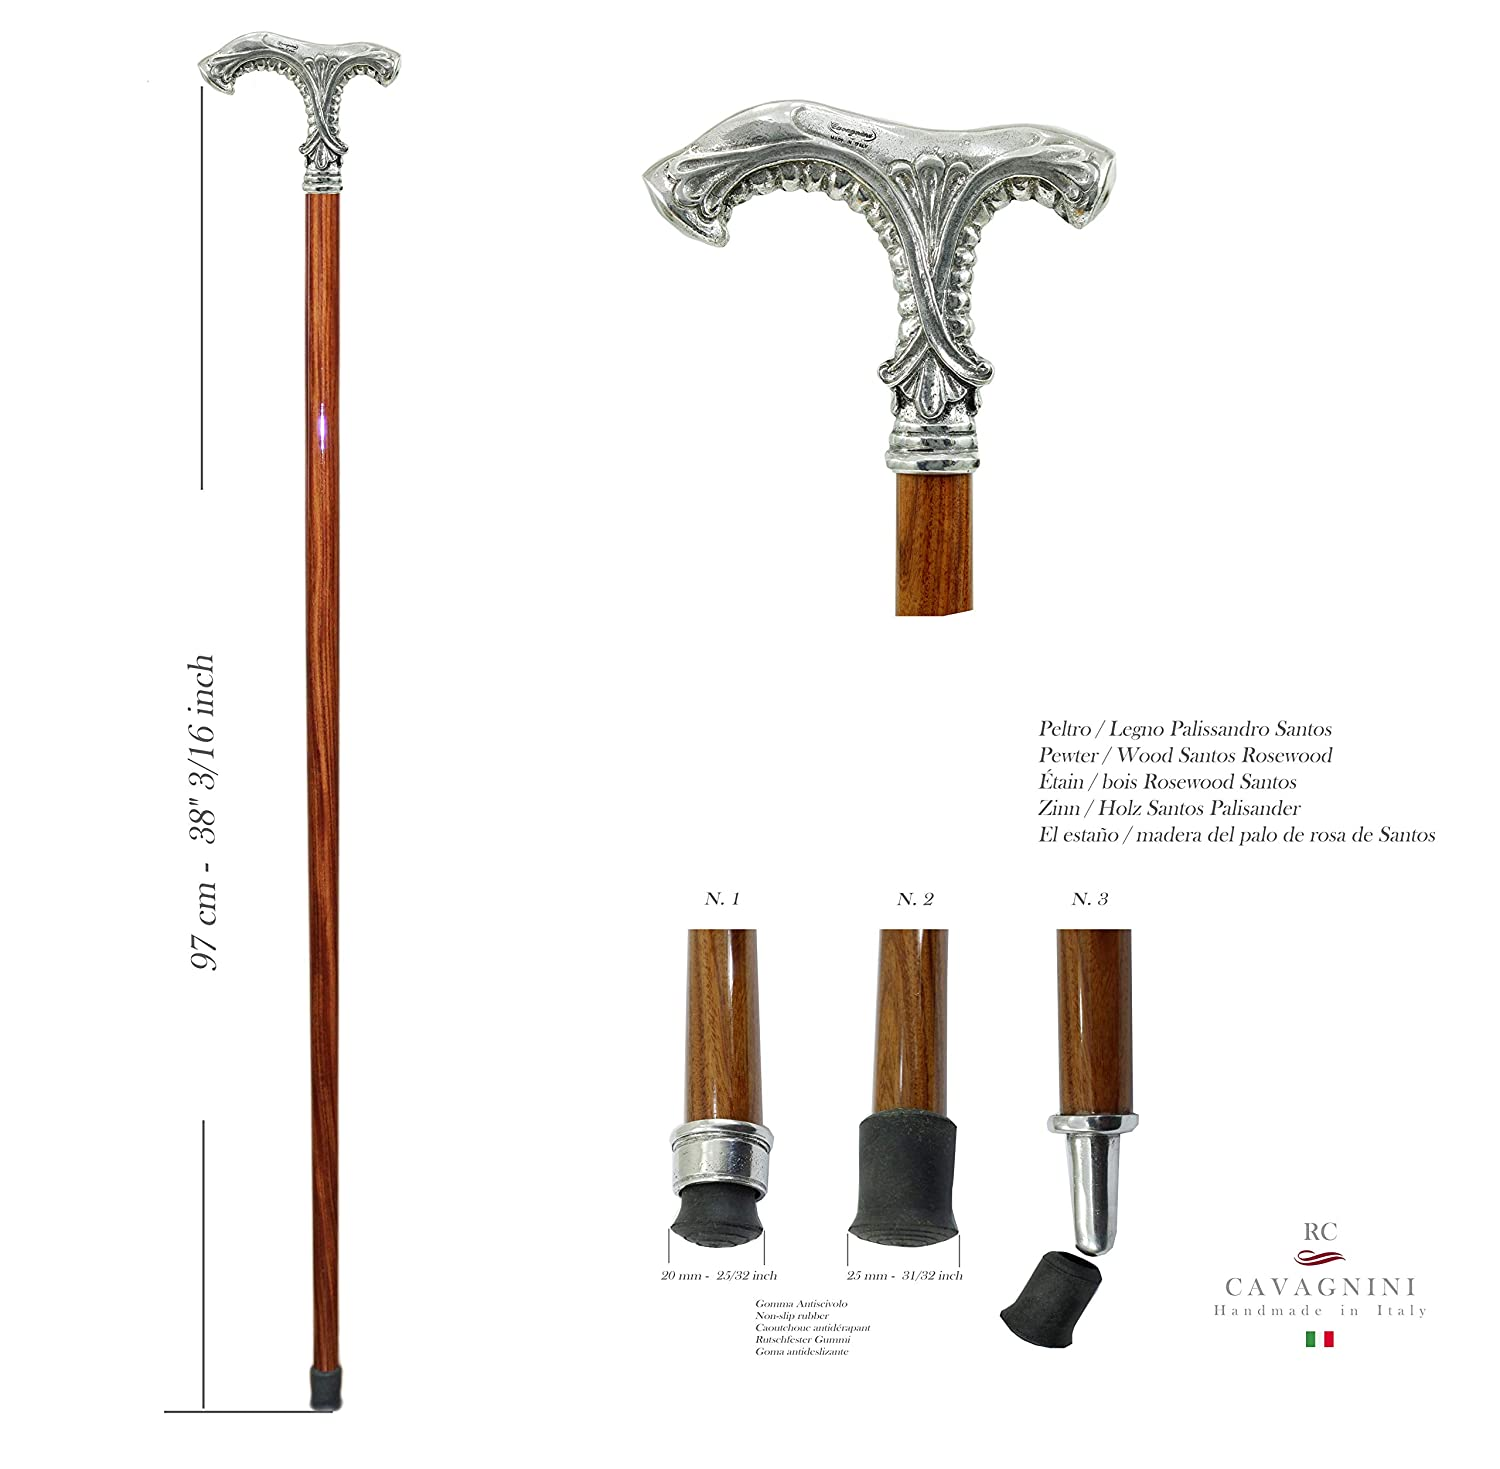 woman Cavagnini metal knob handmade in Italy Luxury rosewood walking stick elegant for man for ceremony